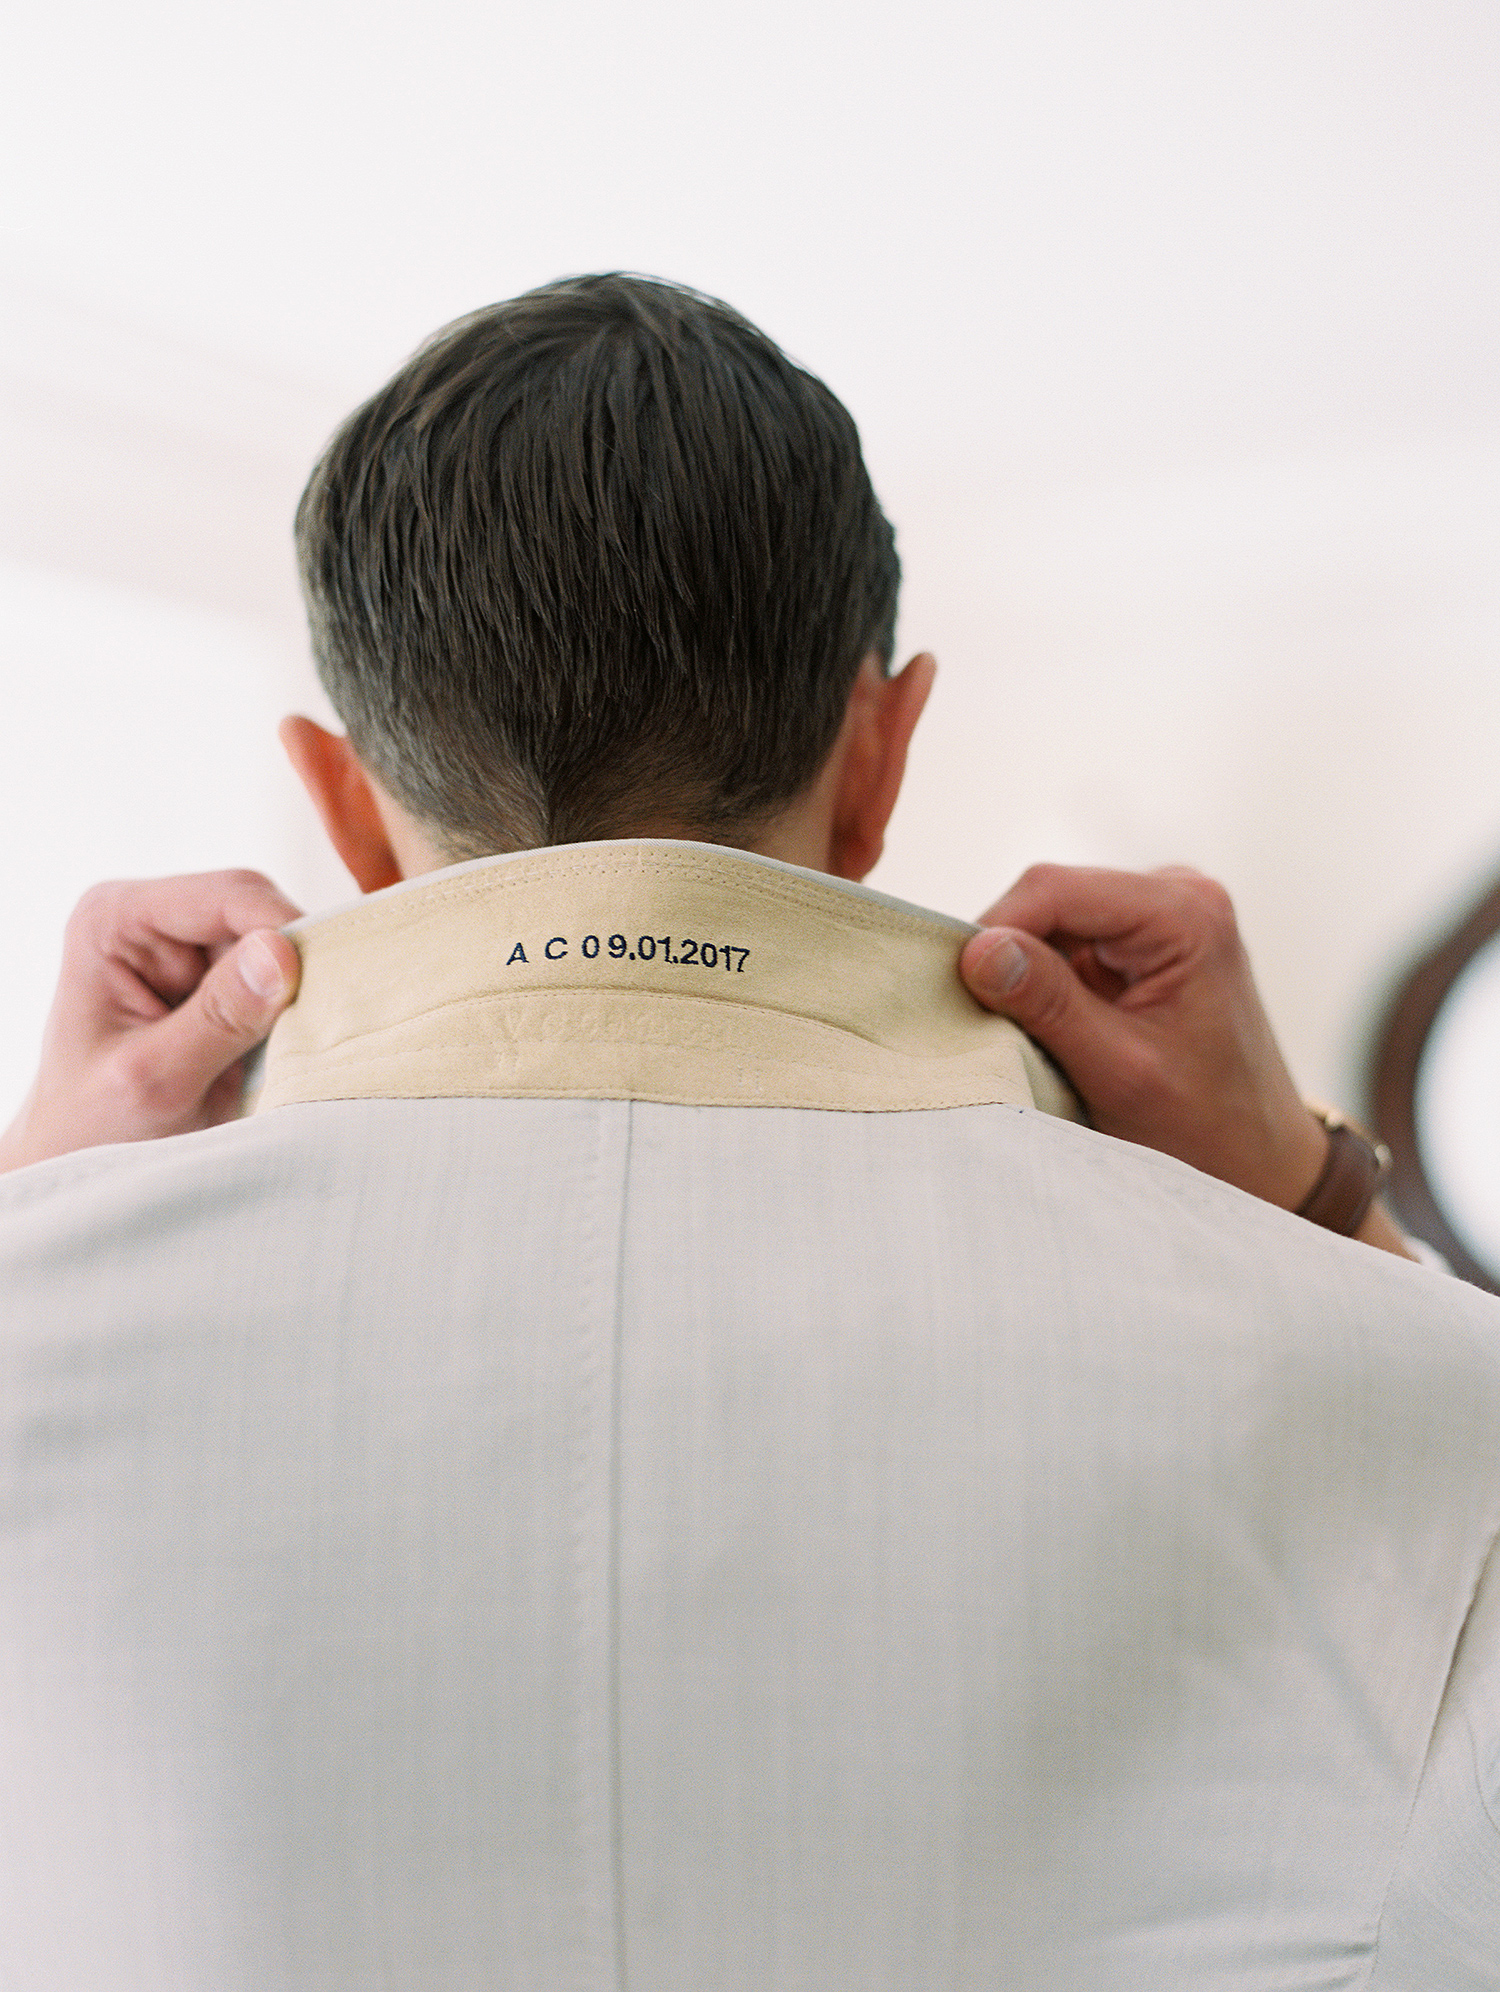 charles andrew wedding shirt embroidery with date